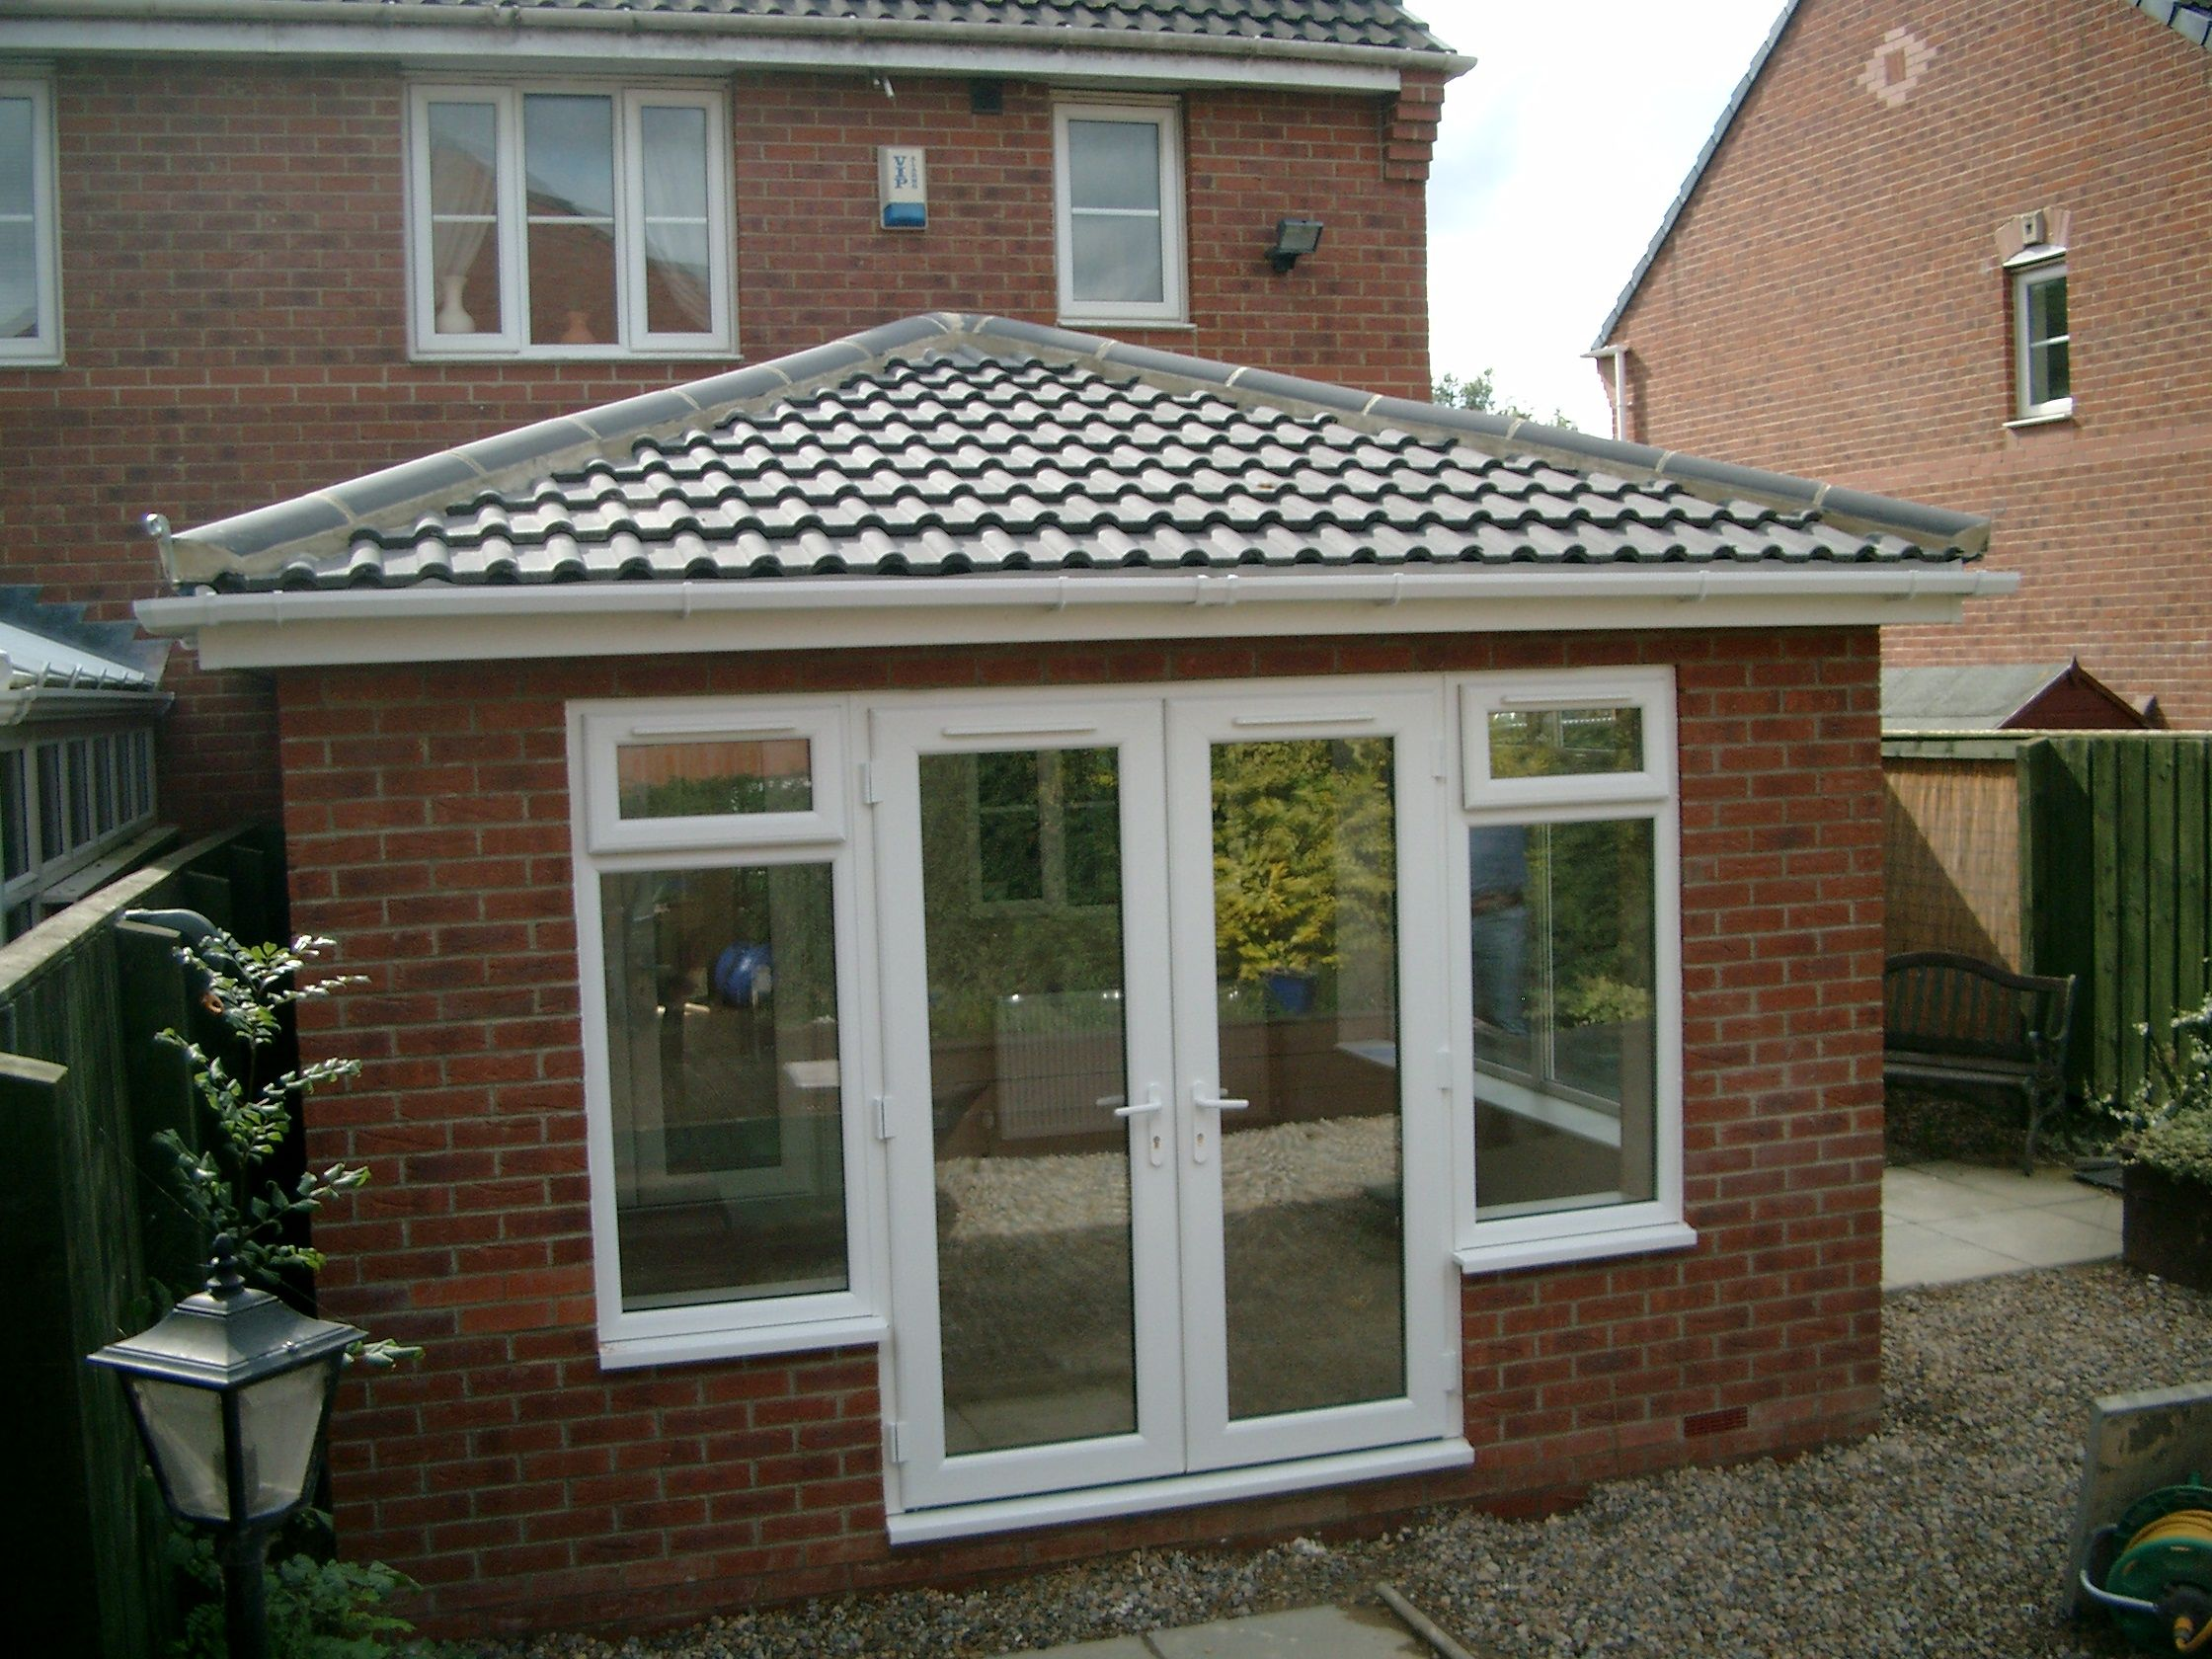 Photos Of Our Work Contact Us For A Free No Obligation Quote Sales Nationalwindowsystems Co Uk Or 01325 38 French Doors Patio Garden Room Front Porch Design